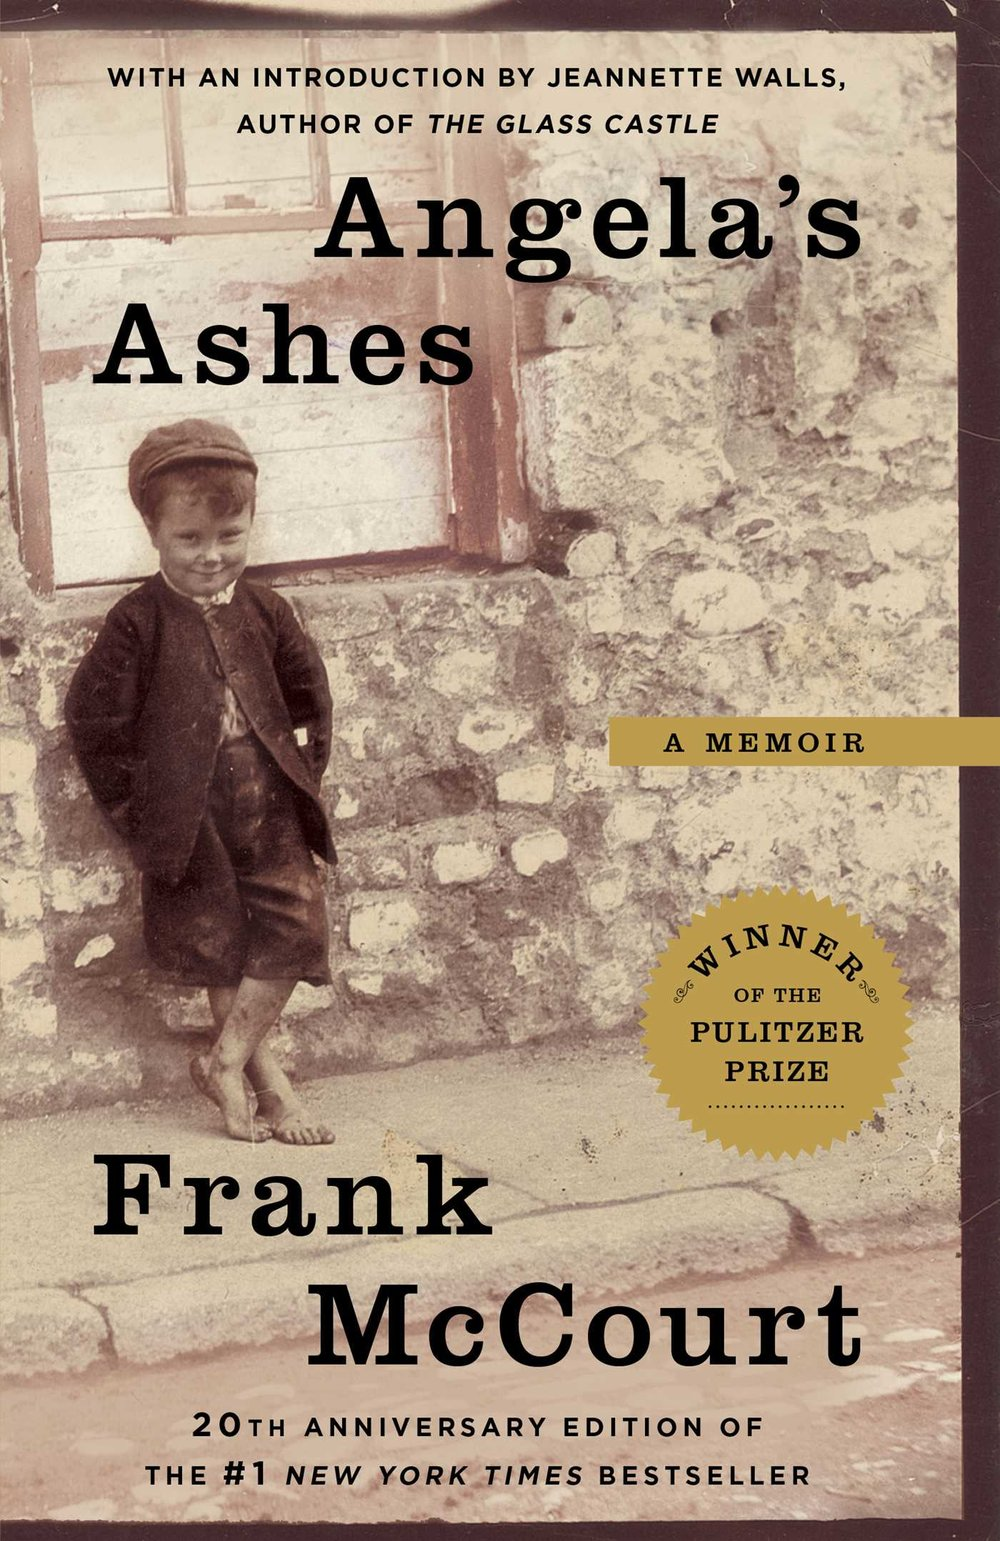 angelas ashes by frank mccourt.jpg